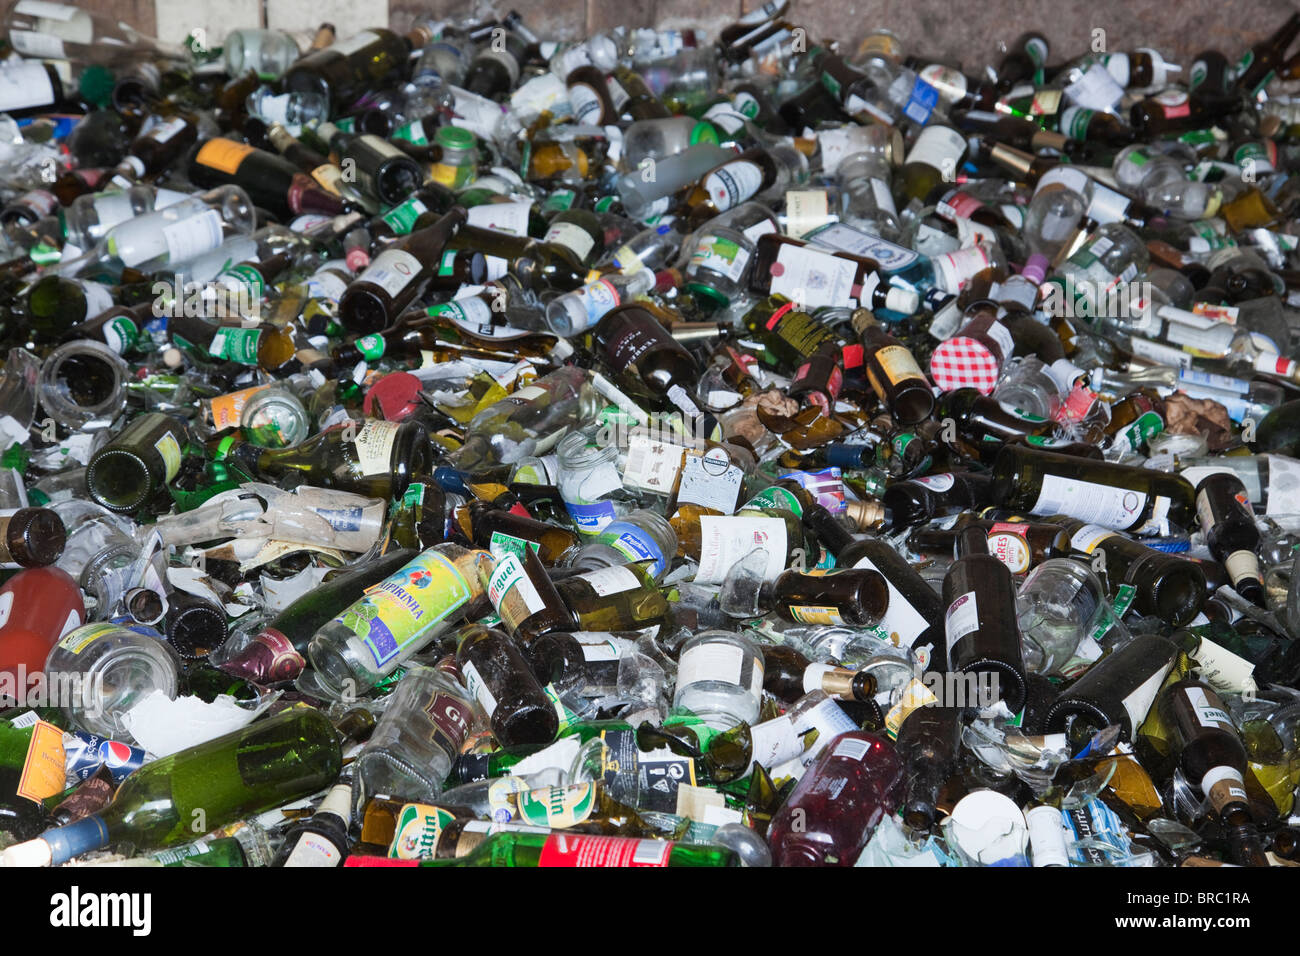 Europe. Pile of bottles and jars in glass recycling facility - Stock Image